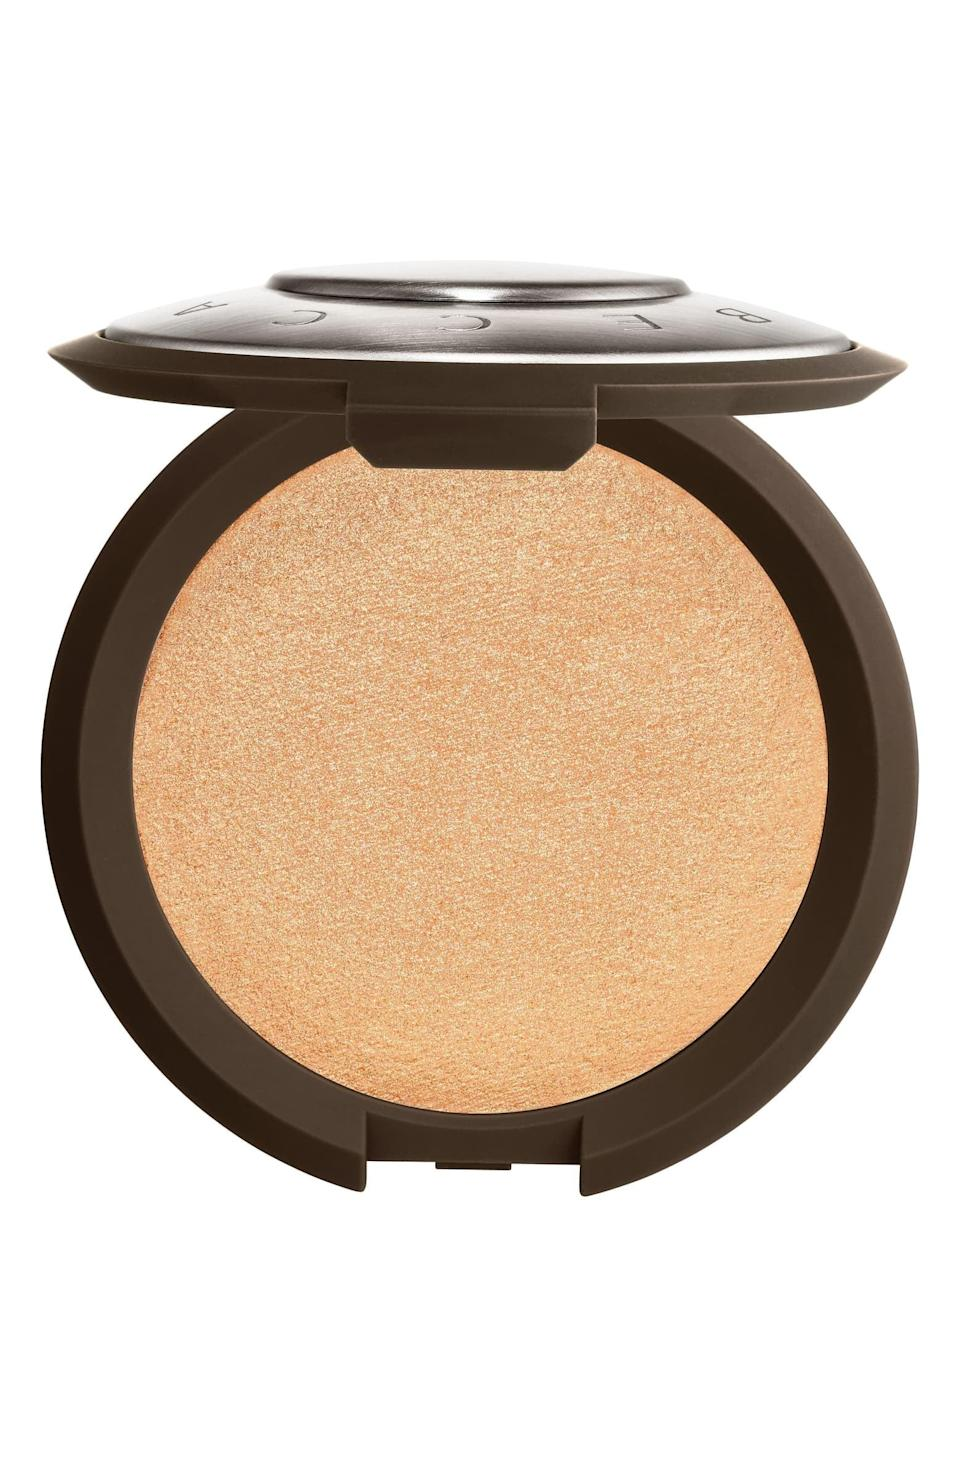 <p>The <span>Becca Shimmering Skin Perfector Pressed Highlighter in Champagne Pop</span> ($38) is majorly popular because it flatters a wide range of skin tones with high-impact shimmer.</p>